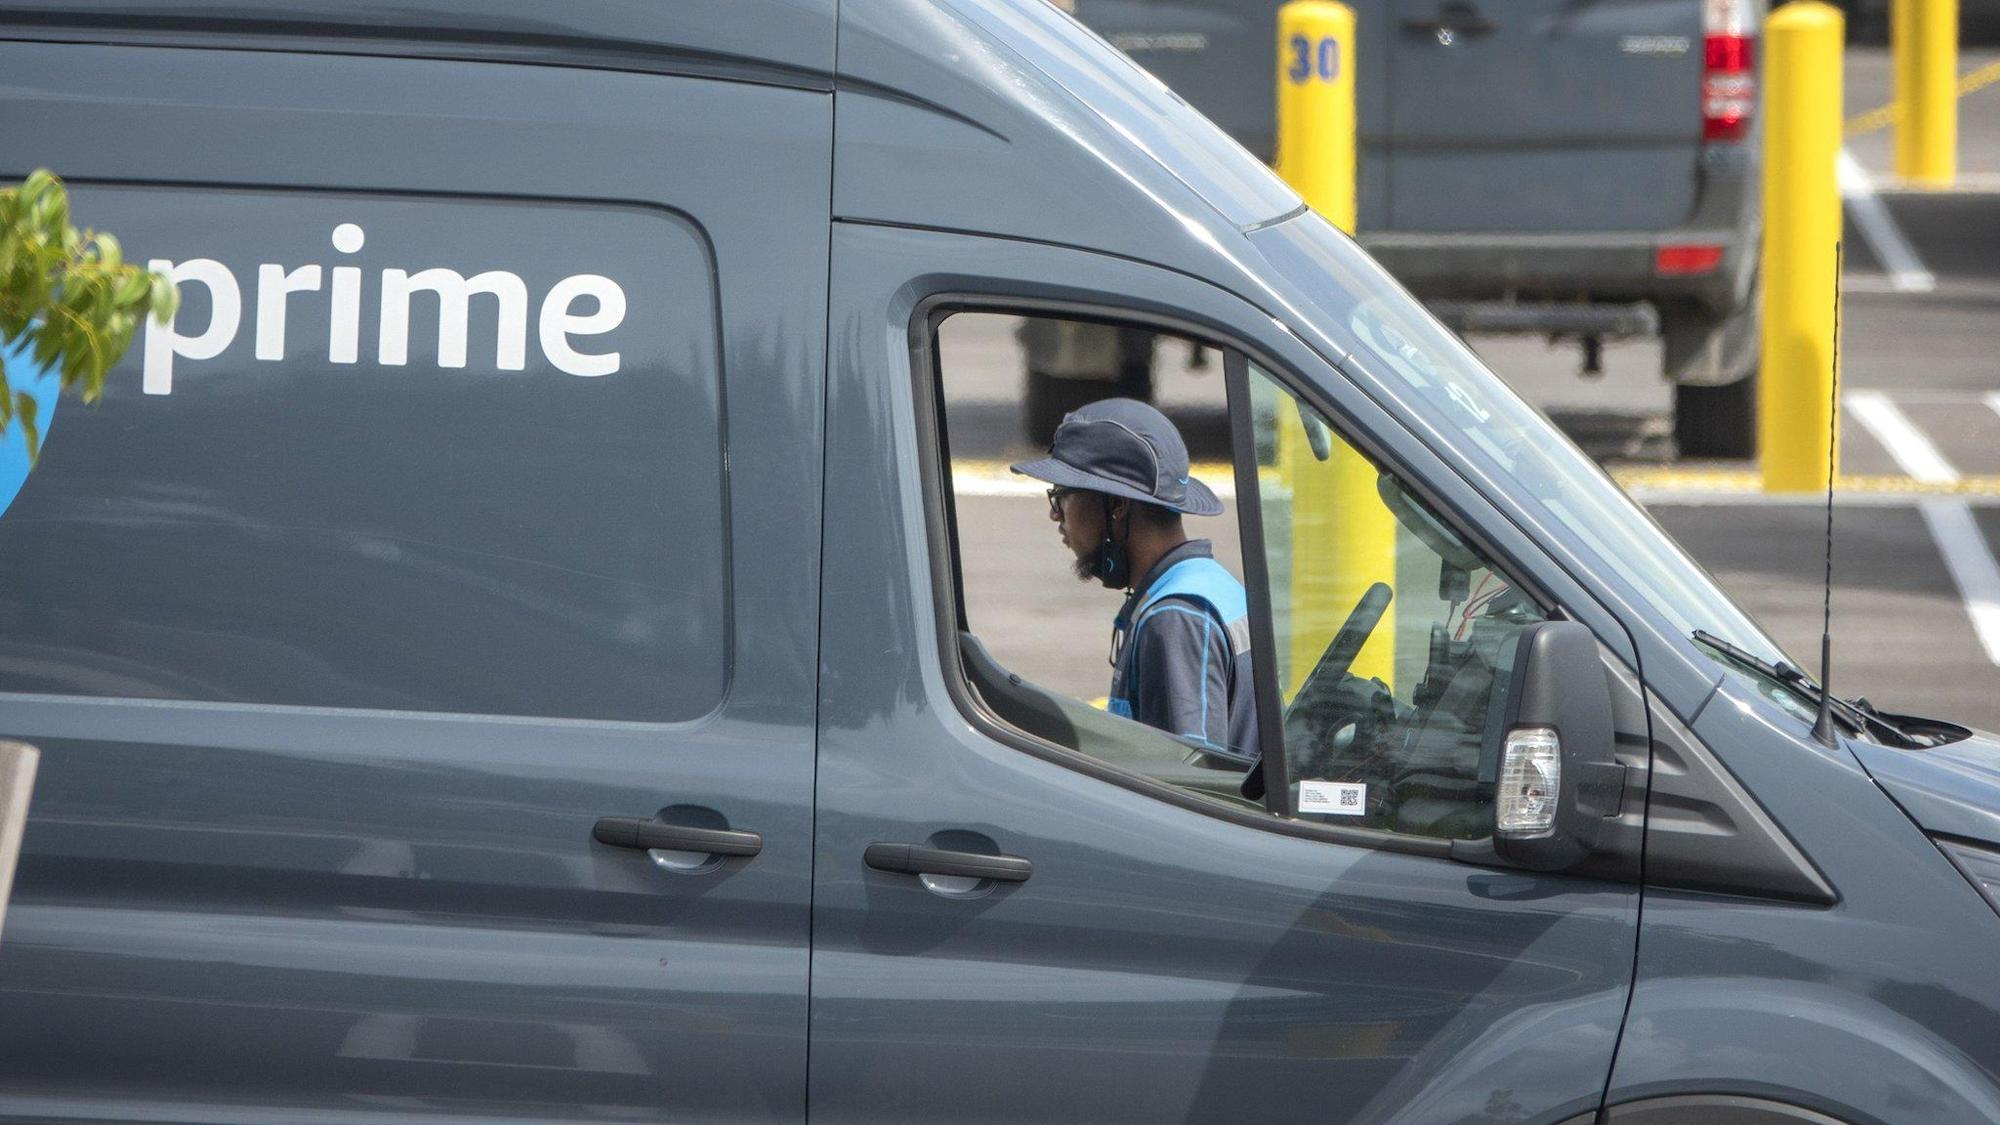 Amazon apologises for wrongly denying drivers need to urinate in bottles thumbnail